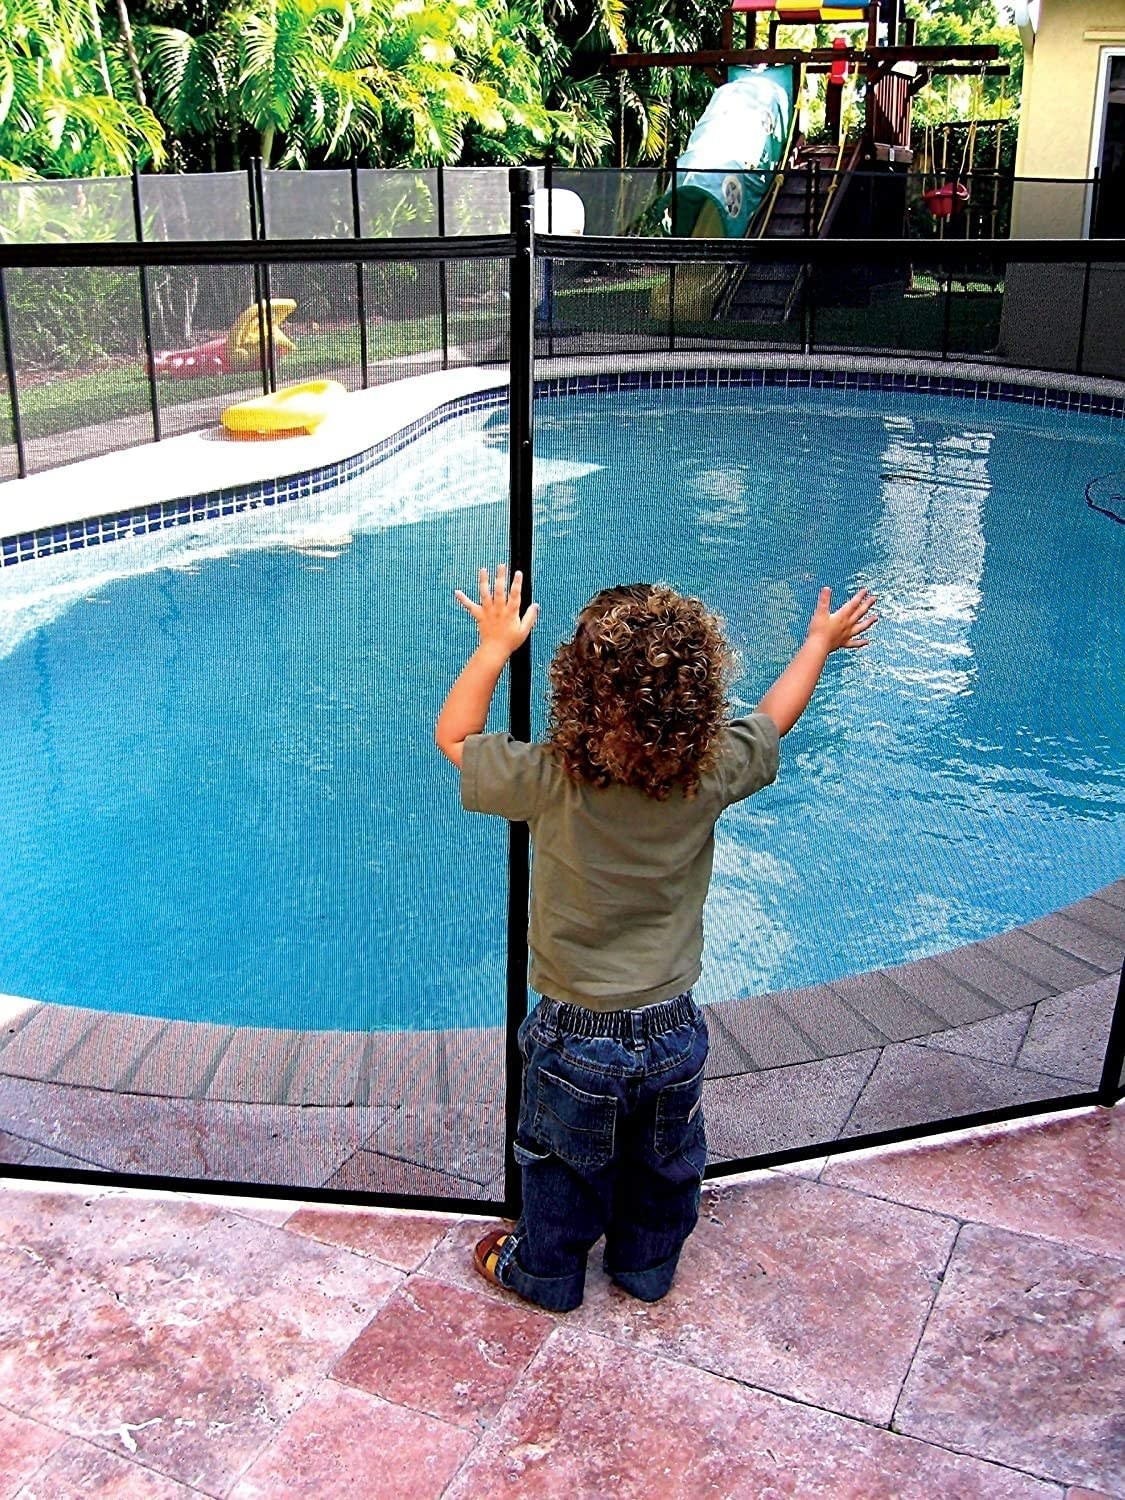 A child pushing against the mesh pool gate without being able to get through